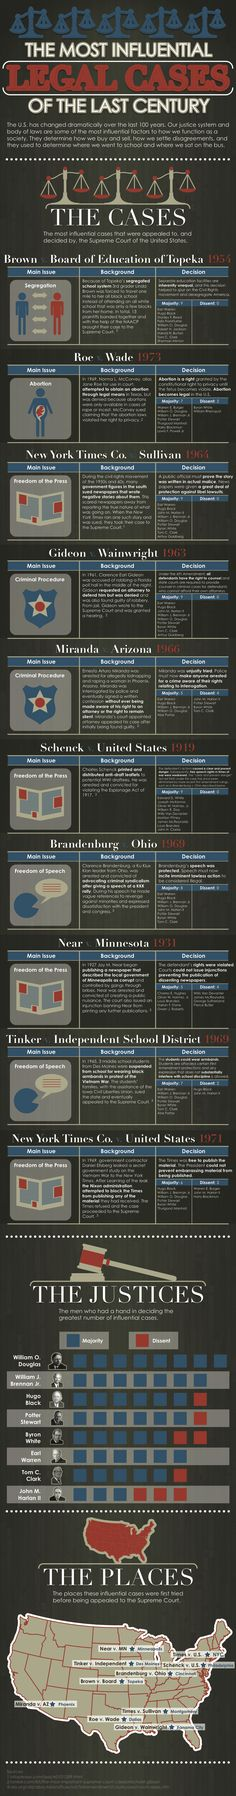 Most Influential Legal Cases of the Last Century Infographic